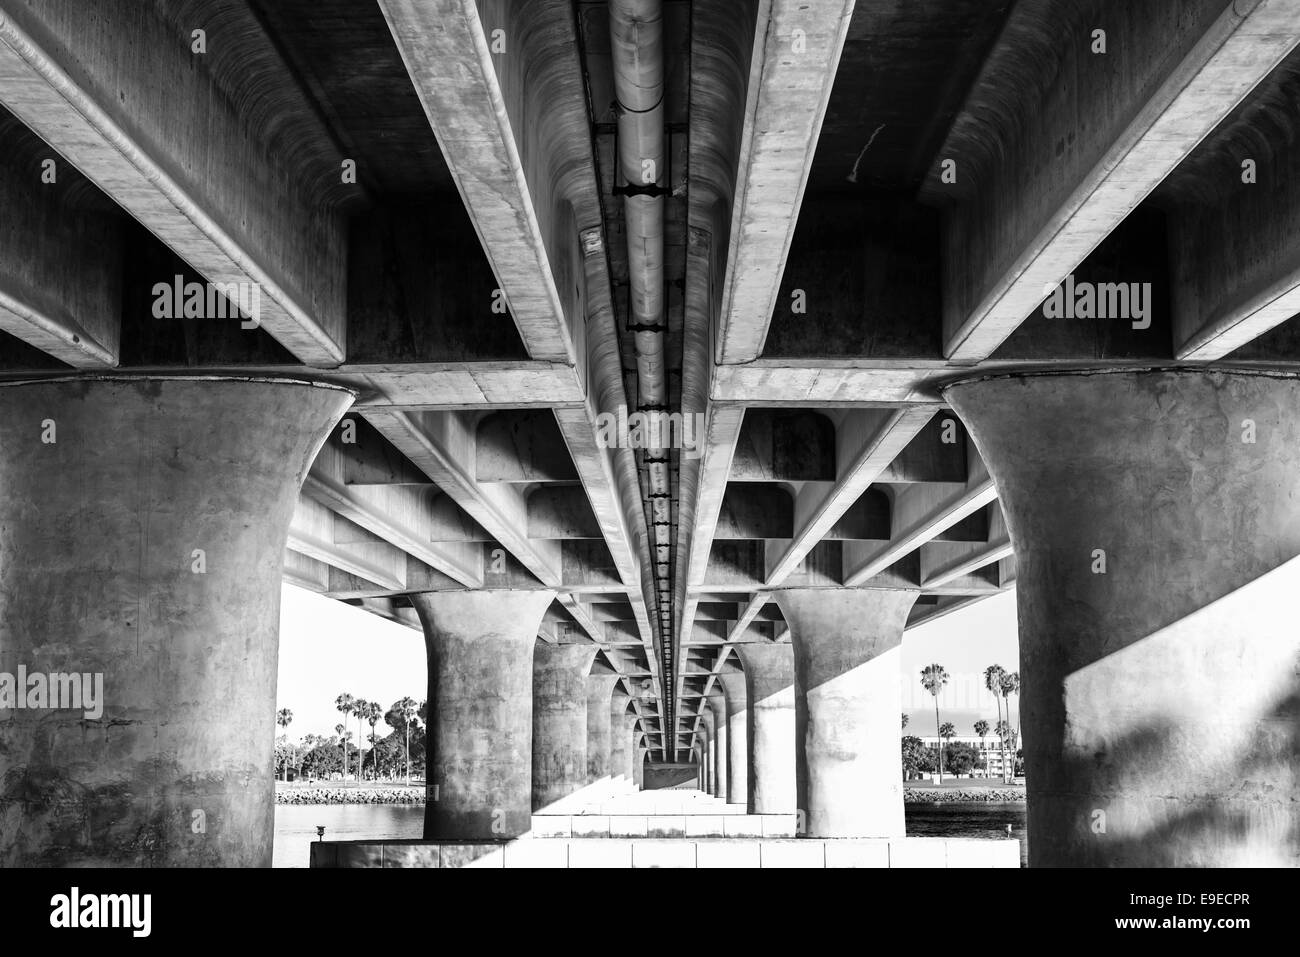 View of the underside of the  West Mission Bay Dr Bridge. Concrete columns in black and white. San Diego, California. - Stock Image